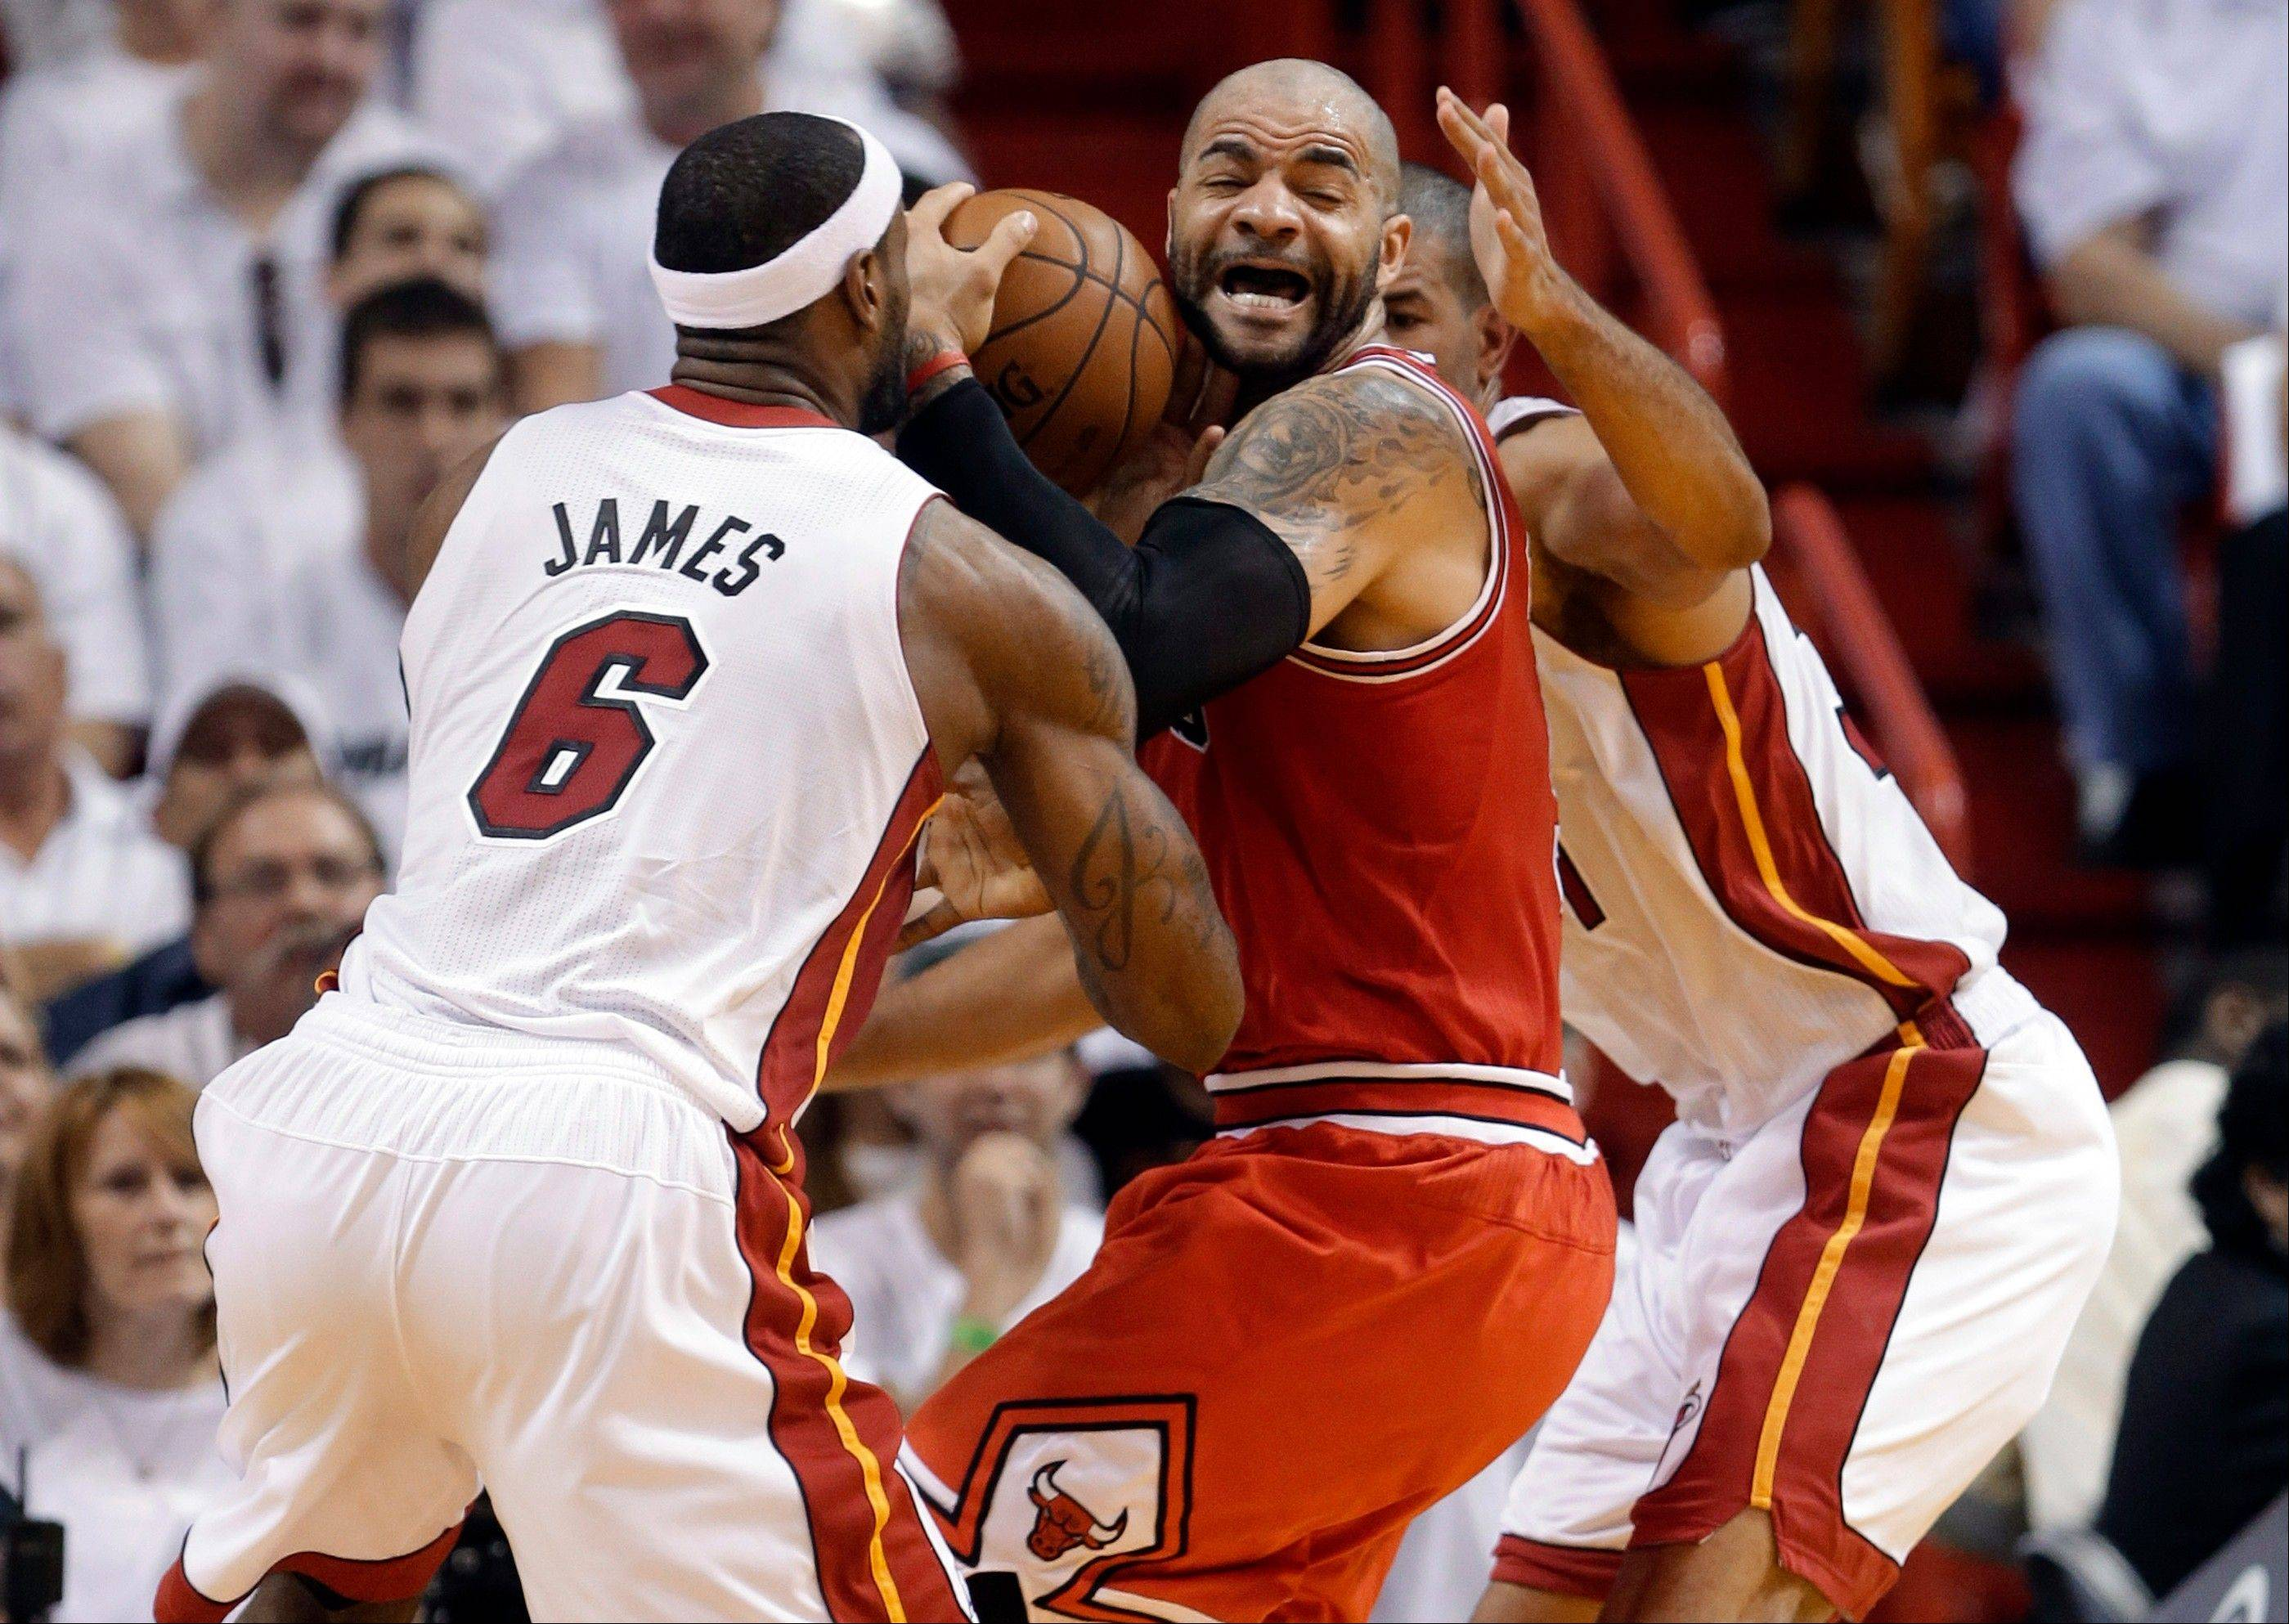 Chicago Bulls' Carlos Boozer, center, works the ball between Miami Heat's LeBron James (6) and Shane Battier, right, as he attempts to shoot during the first half of Game 5 of an NBA basketball Eastern Conference semifinal, Wednesday, May 15, 2013, in Miami.